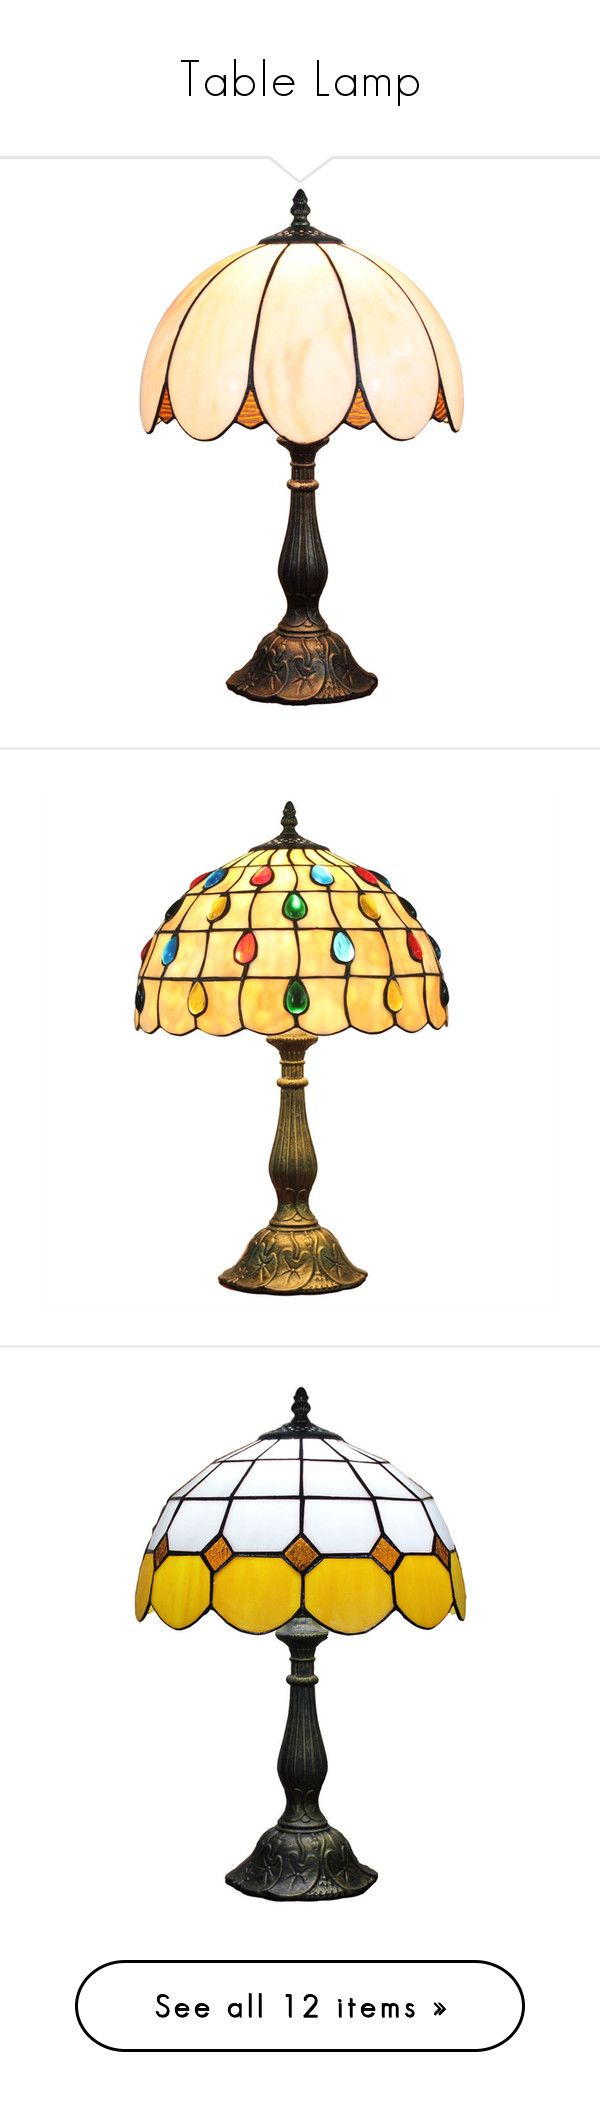 """""""Table Lamp"""" by homelava ❤ liked on Polyvore featuring home, lighting, table lamps, array0x14a6f658, european lighting, petal lamp, retro shades, blossom lights, retro table lamps and array0x1b8eb6d8"""